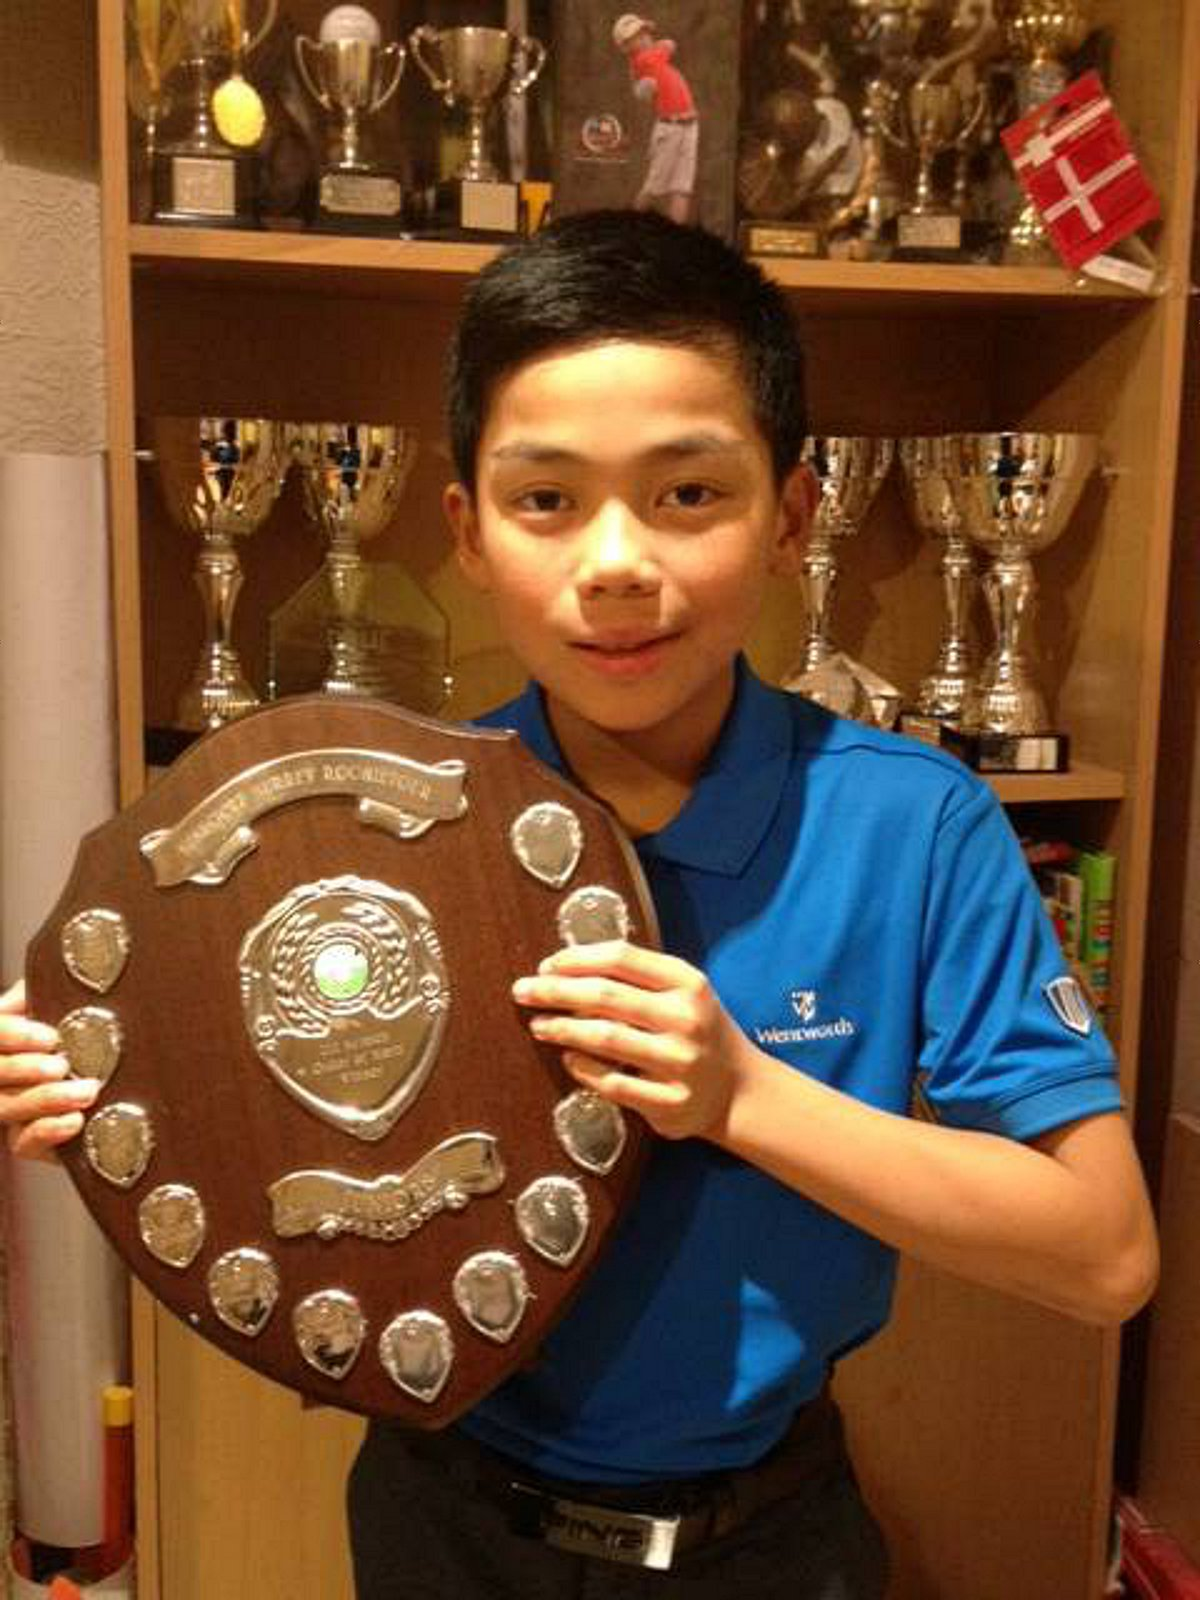 One for the future: Enrique Dimayuga with yet another piece of silverware